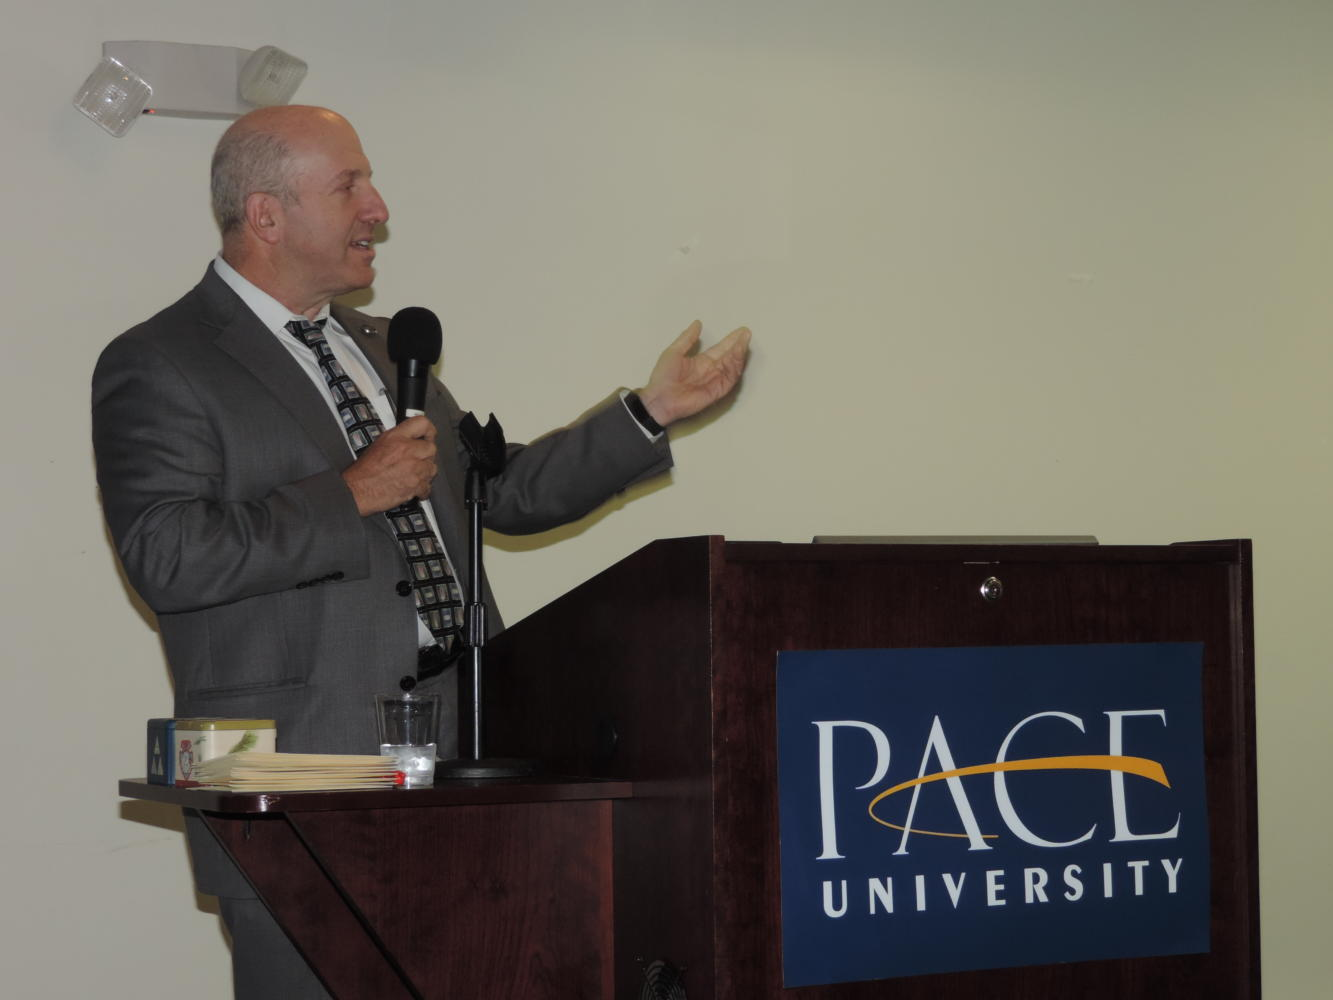 President Krislov greets the Pace community. Photo by Emily Bresnahan